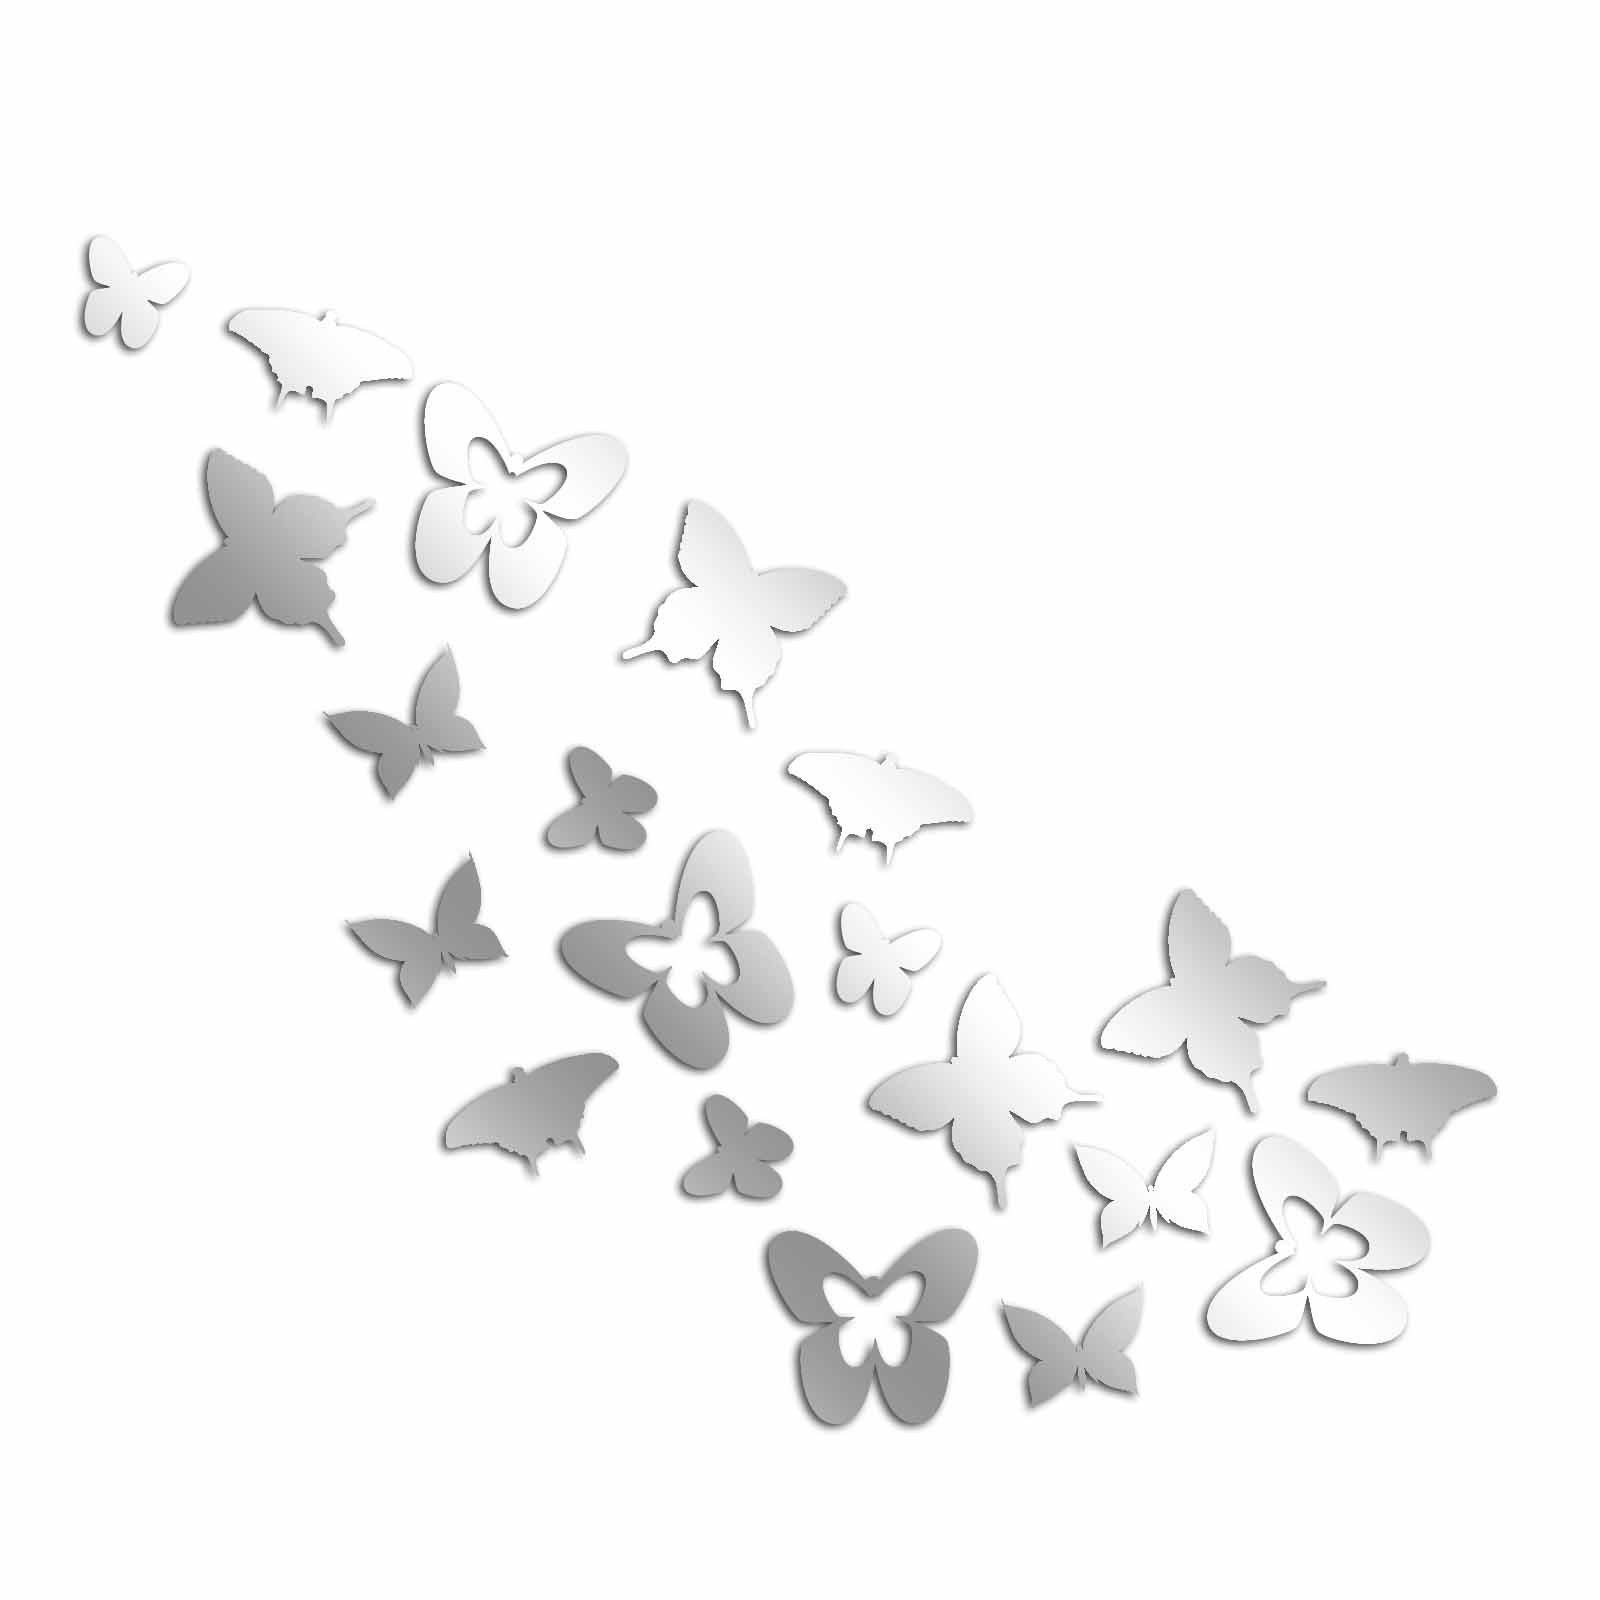 Decorative Removable Wall Sticker Mirror PLEXIGLASS (39.4'' x 39.4'') Number of Pieces 23 / Design Geometric Modern Pattern Butterfly Animal Cute / Background Decoration Perfect Design For Home, Office,